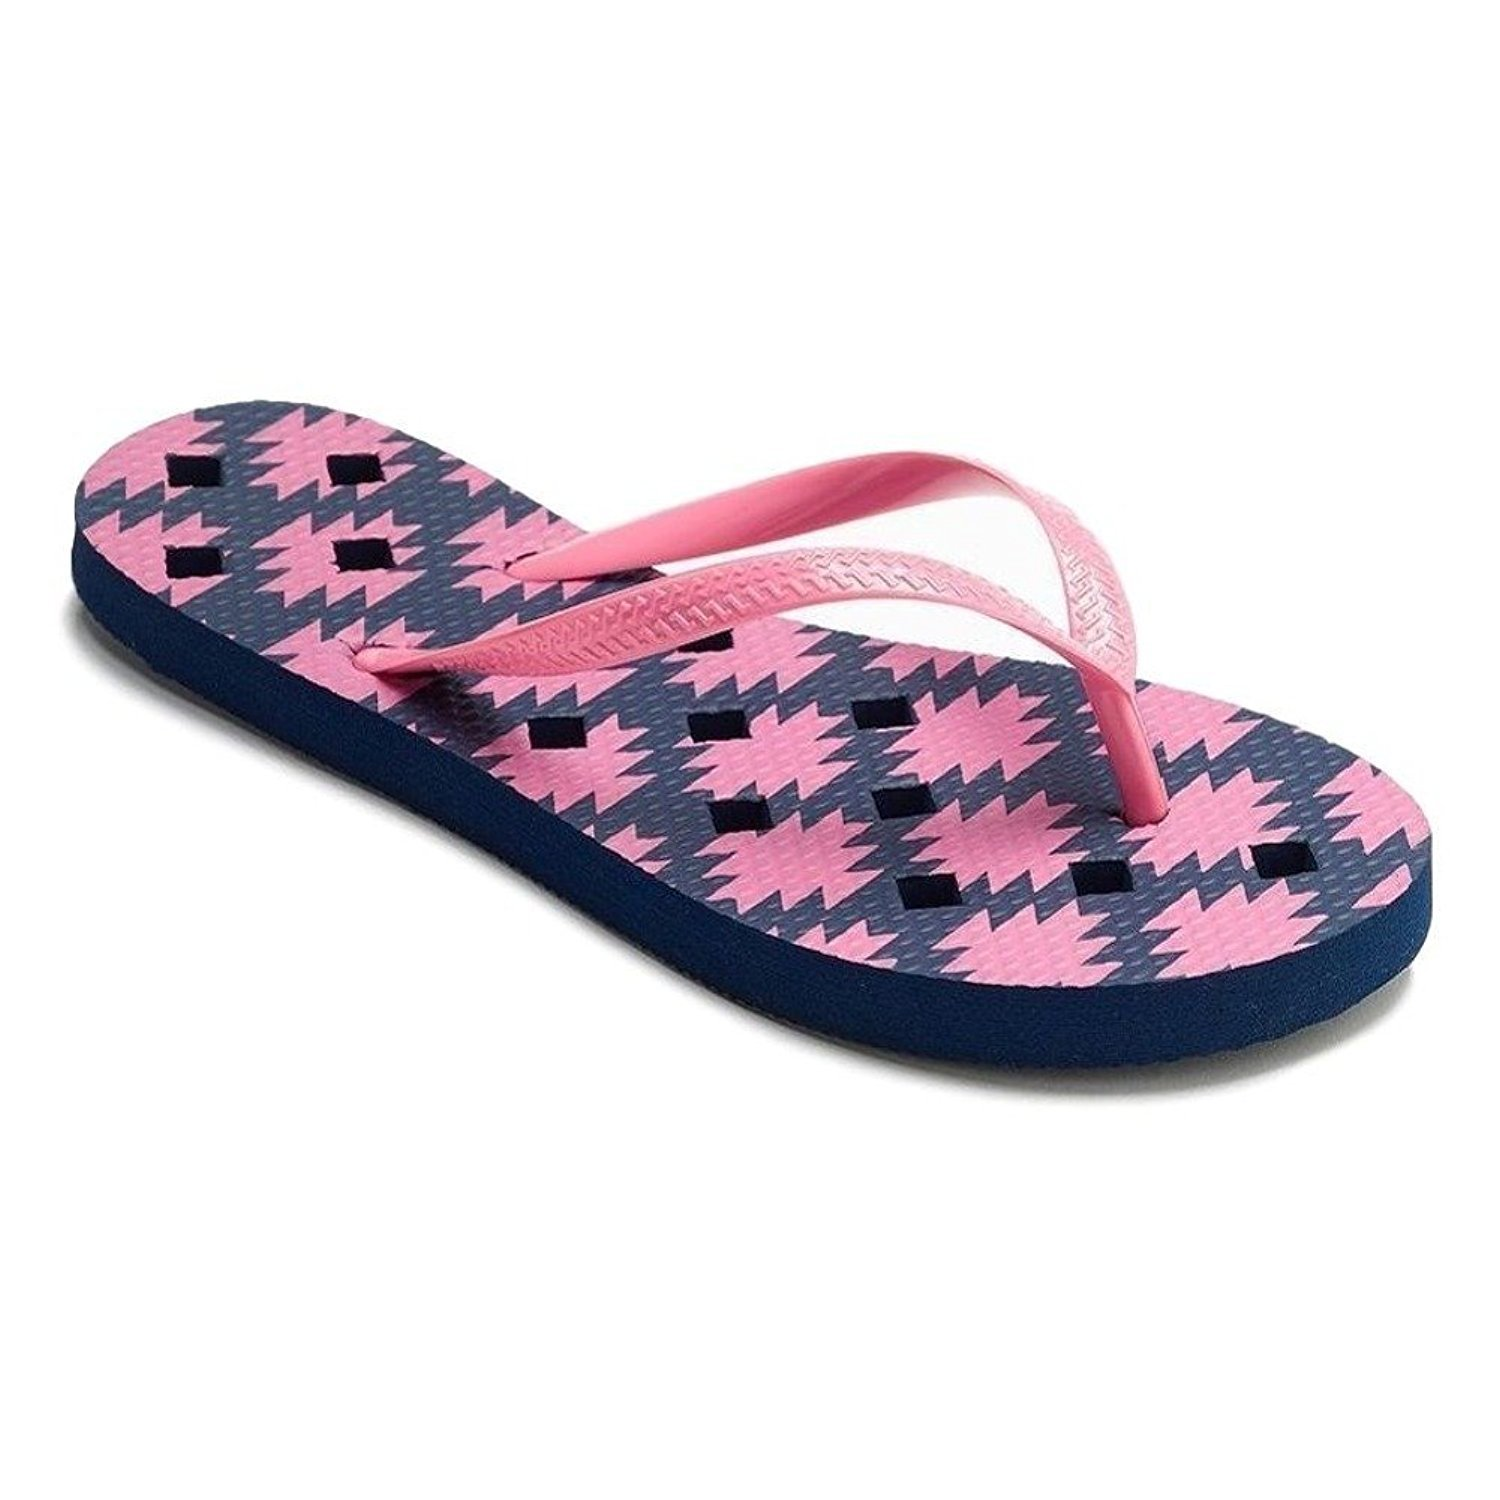 Simple By Design Women Antimicrobial Shower Flip Flop Shoes Water Sandals B01GK8XJVW Medium / 7-8 B(M) US|Pink & Navy Blue